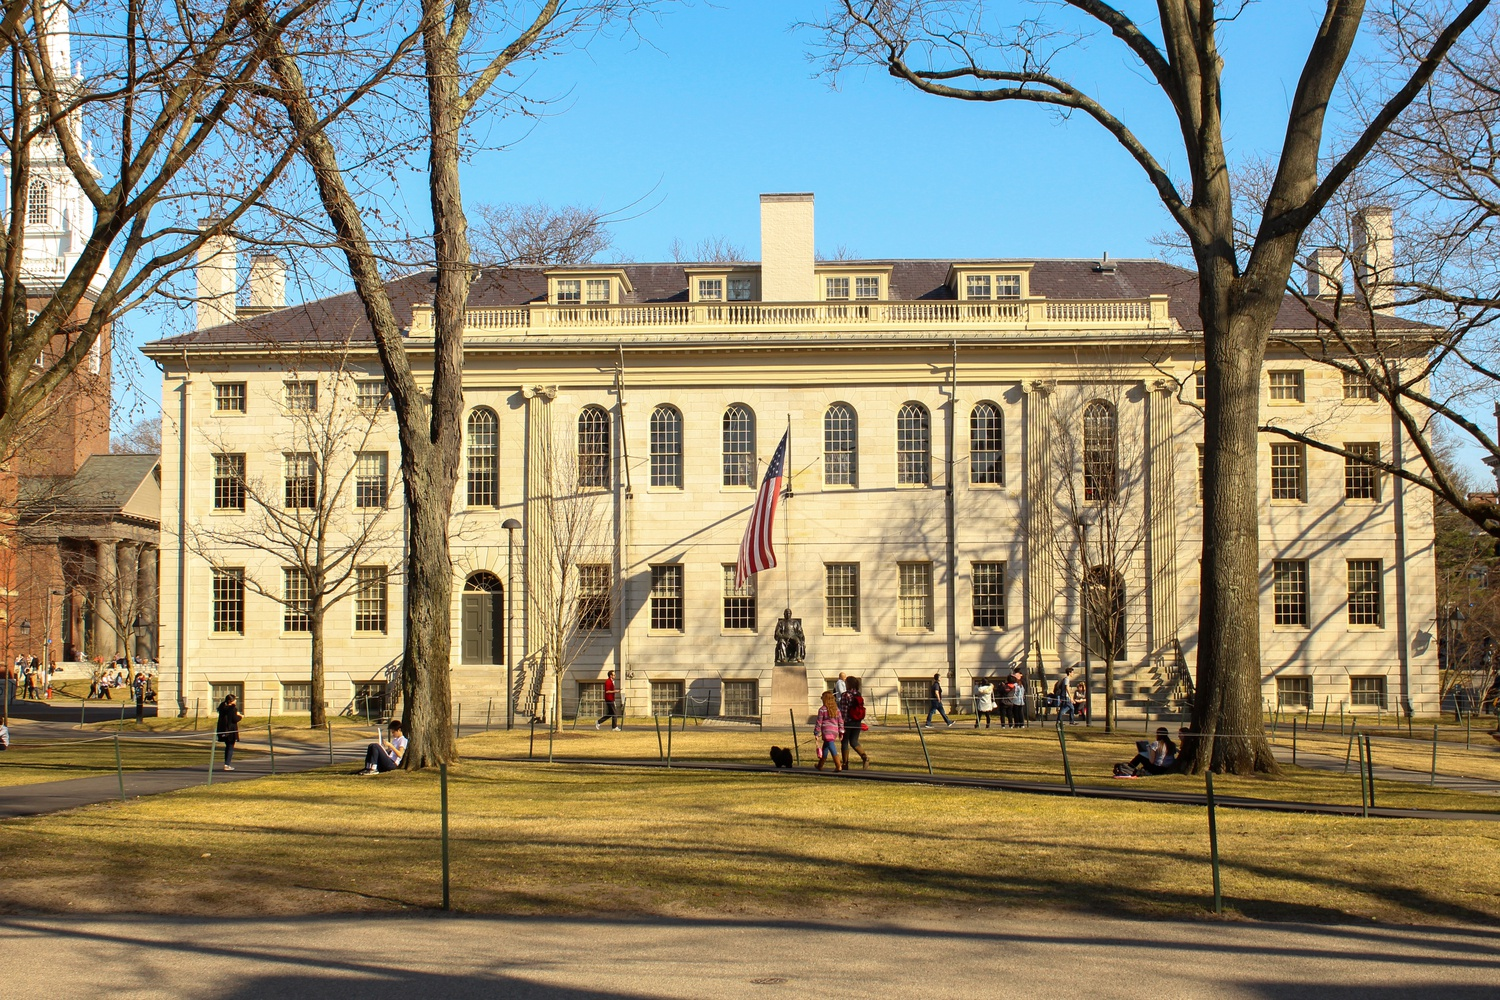 University Hall houses several administrative offices, including those of the Faculty of Arts and Sciences and Harvard College.